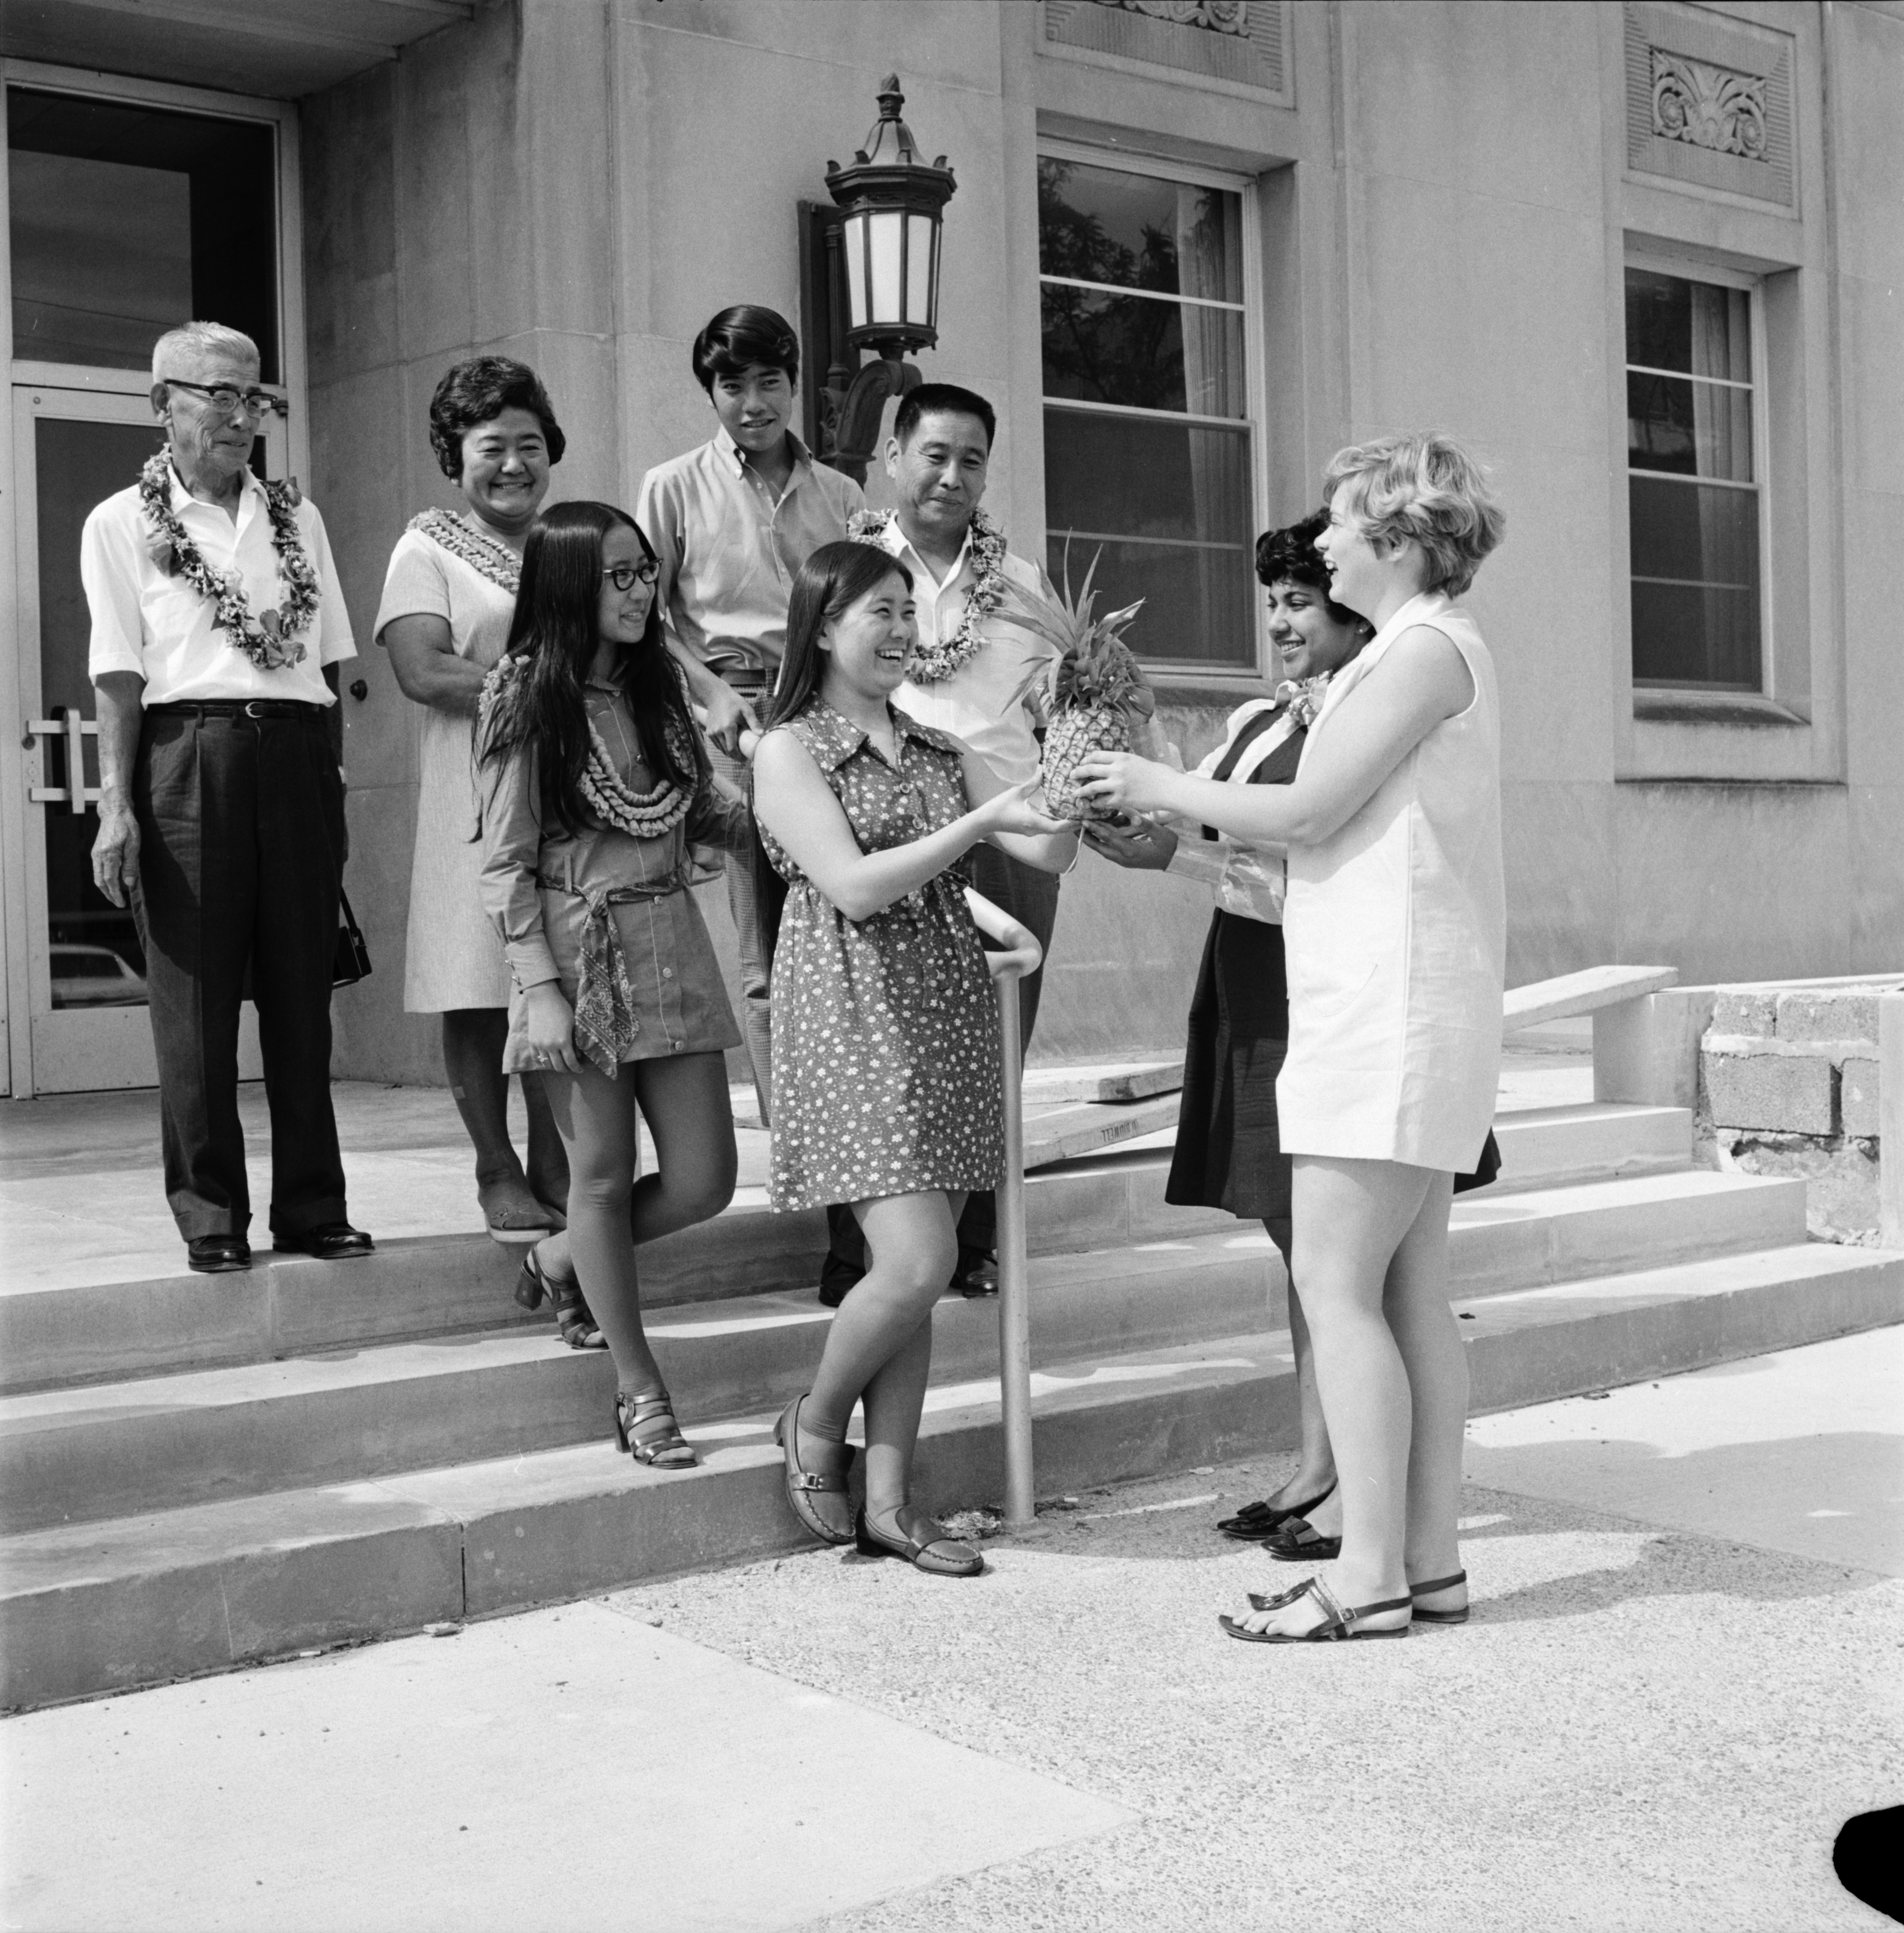 Yabui Family Arrives from Hawaii to Celebrate Phyllis' Graduation, June 1970 image